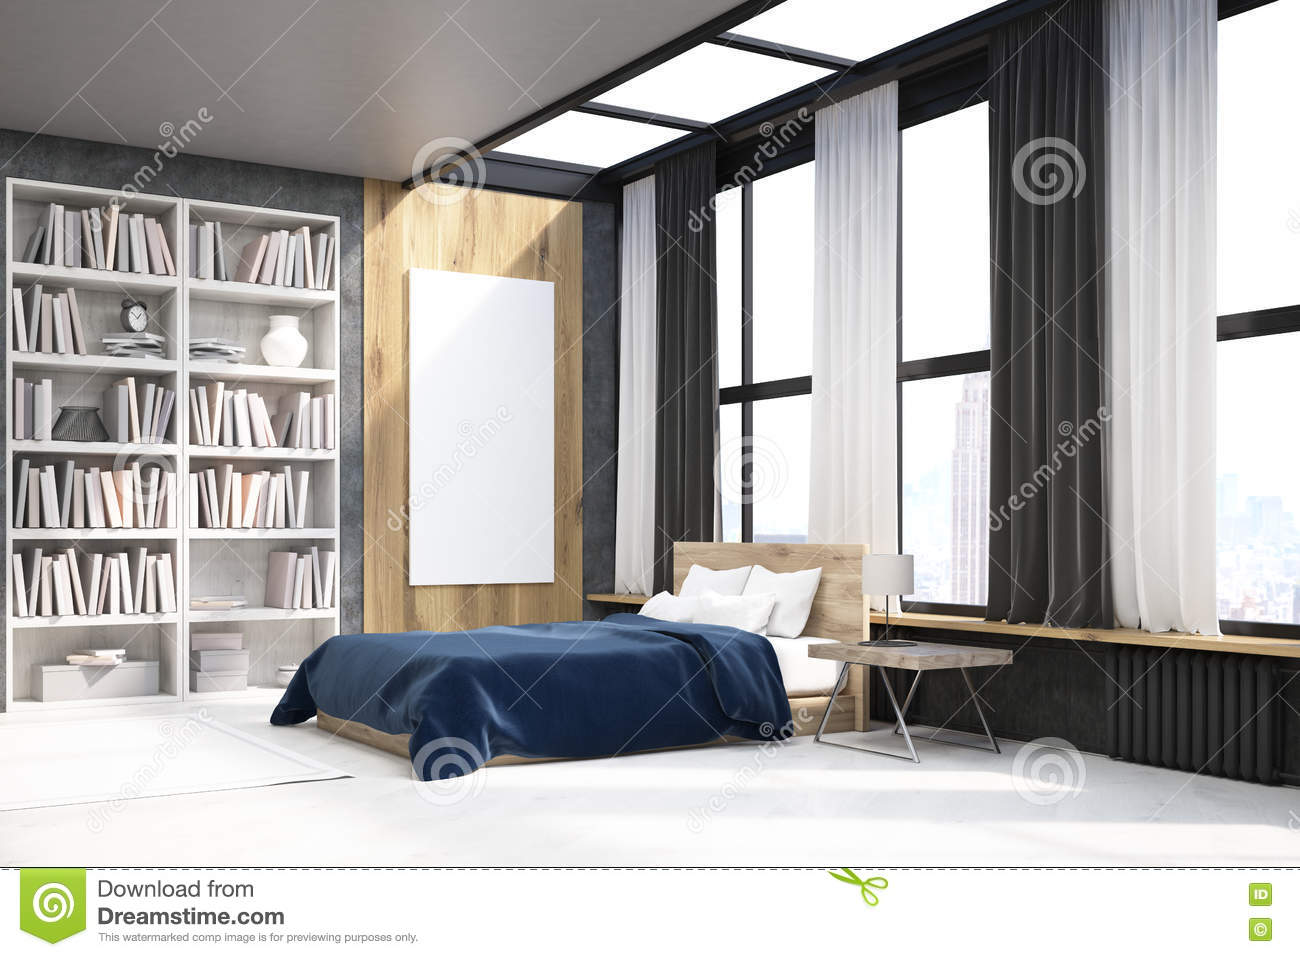 vue de chambre coucher avec l 39 affiche et la biblioth que illustration stock image 79996699. Black Bedroom Furniture Sets. Home Design Ideas